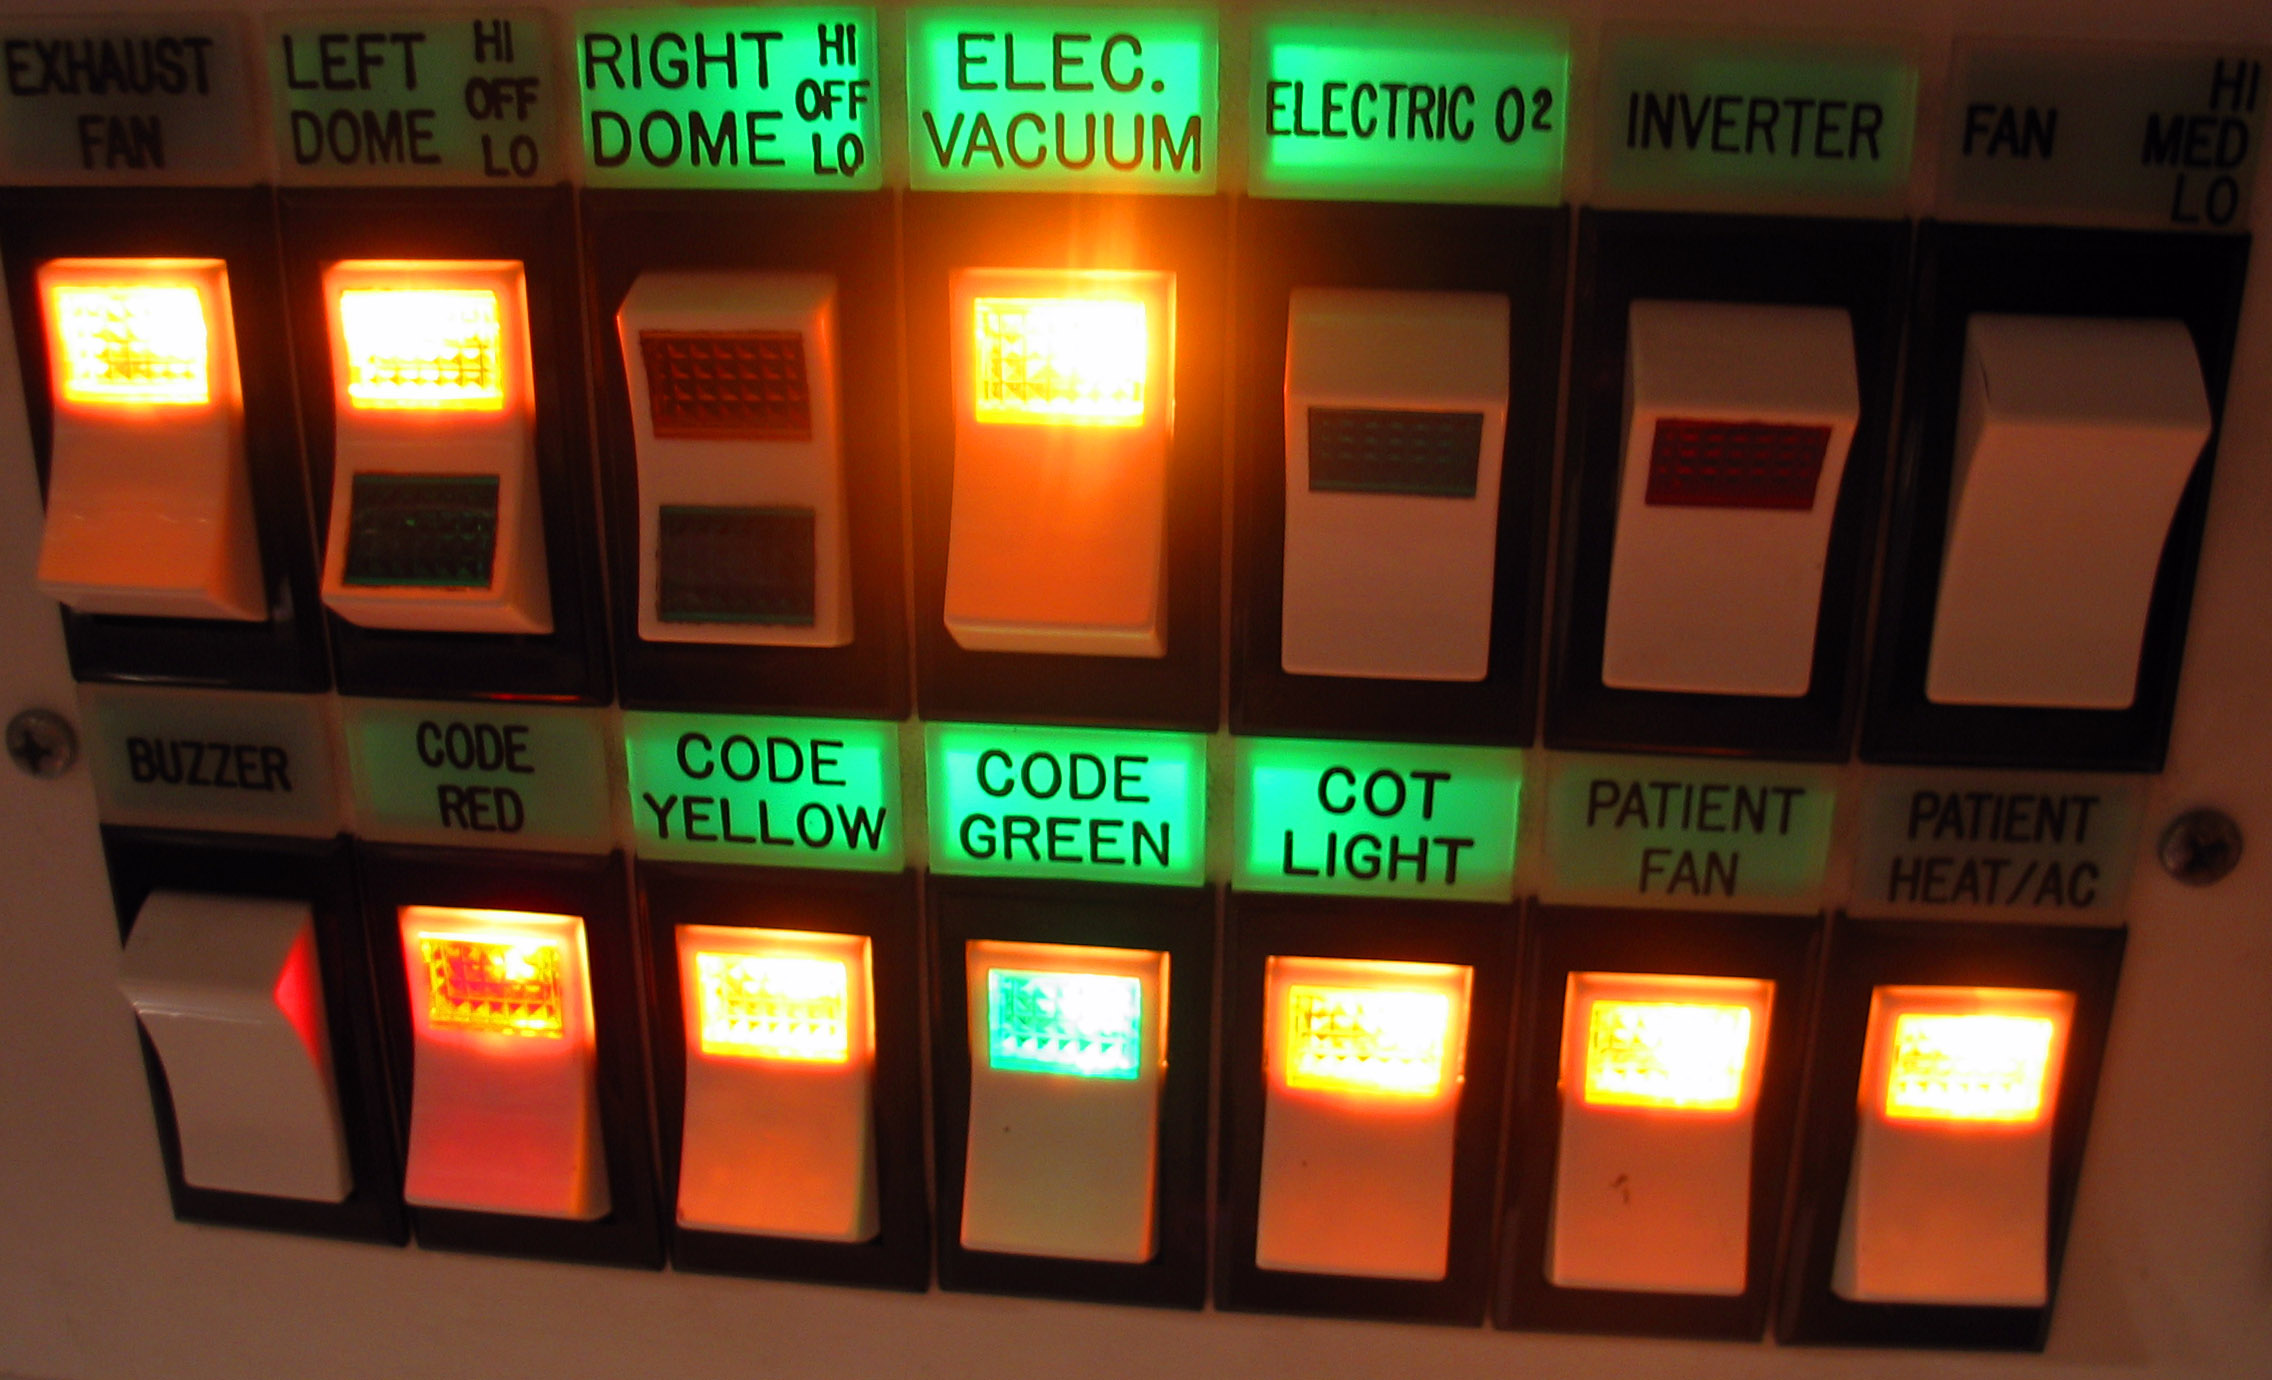 File:Ambulance Control Panel - Lighted switches.jpg - Wikimedia Commons